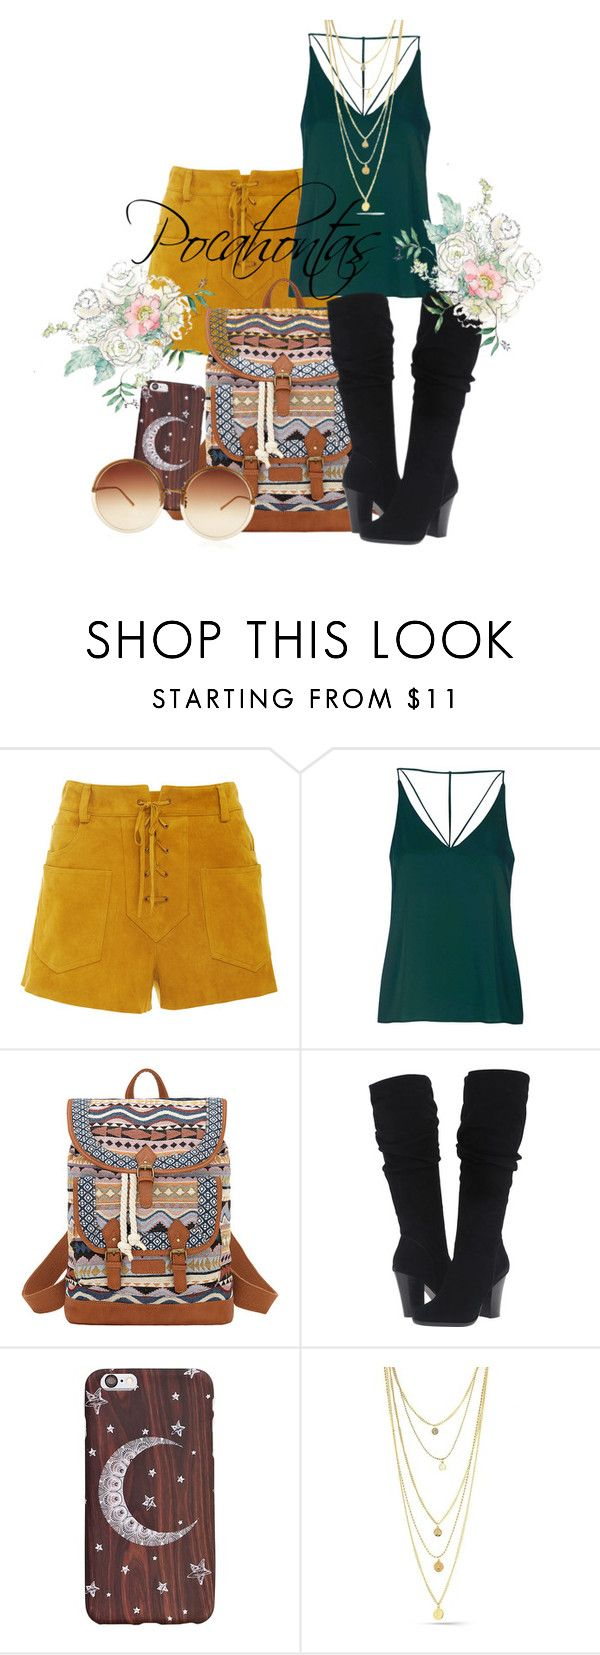 """Pocahontas"" by grraciie-386 on Polyvore featuring Tory Burch, Topshop, Bandana, Steve Madden and Linda Farrow"